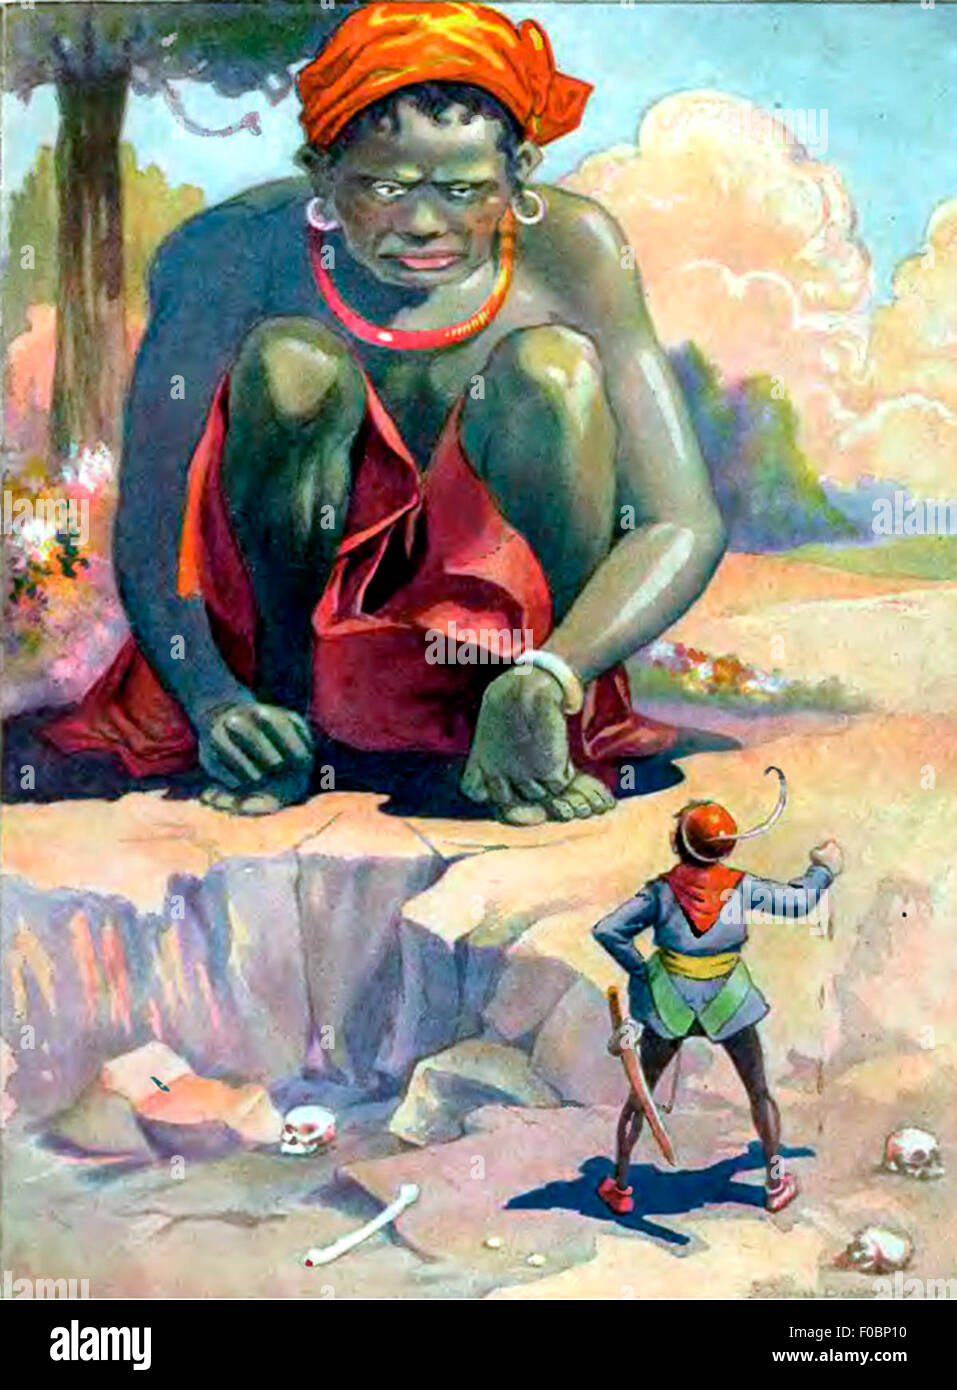 Jack and the Giant in Jack and the Beanstalk - Stock Image